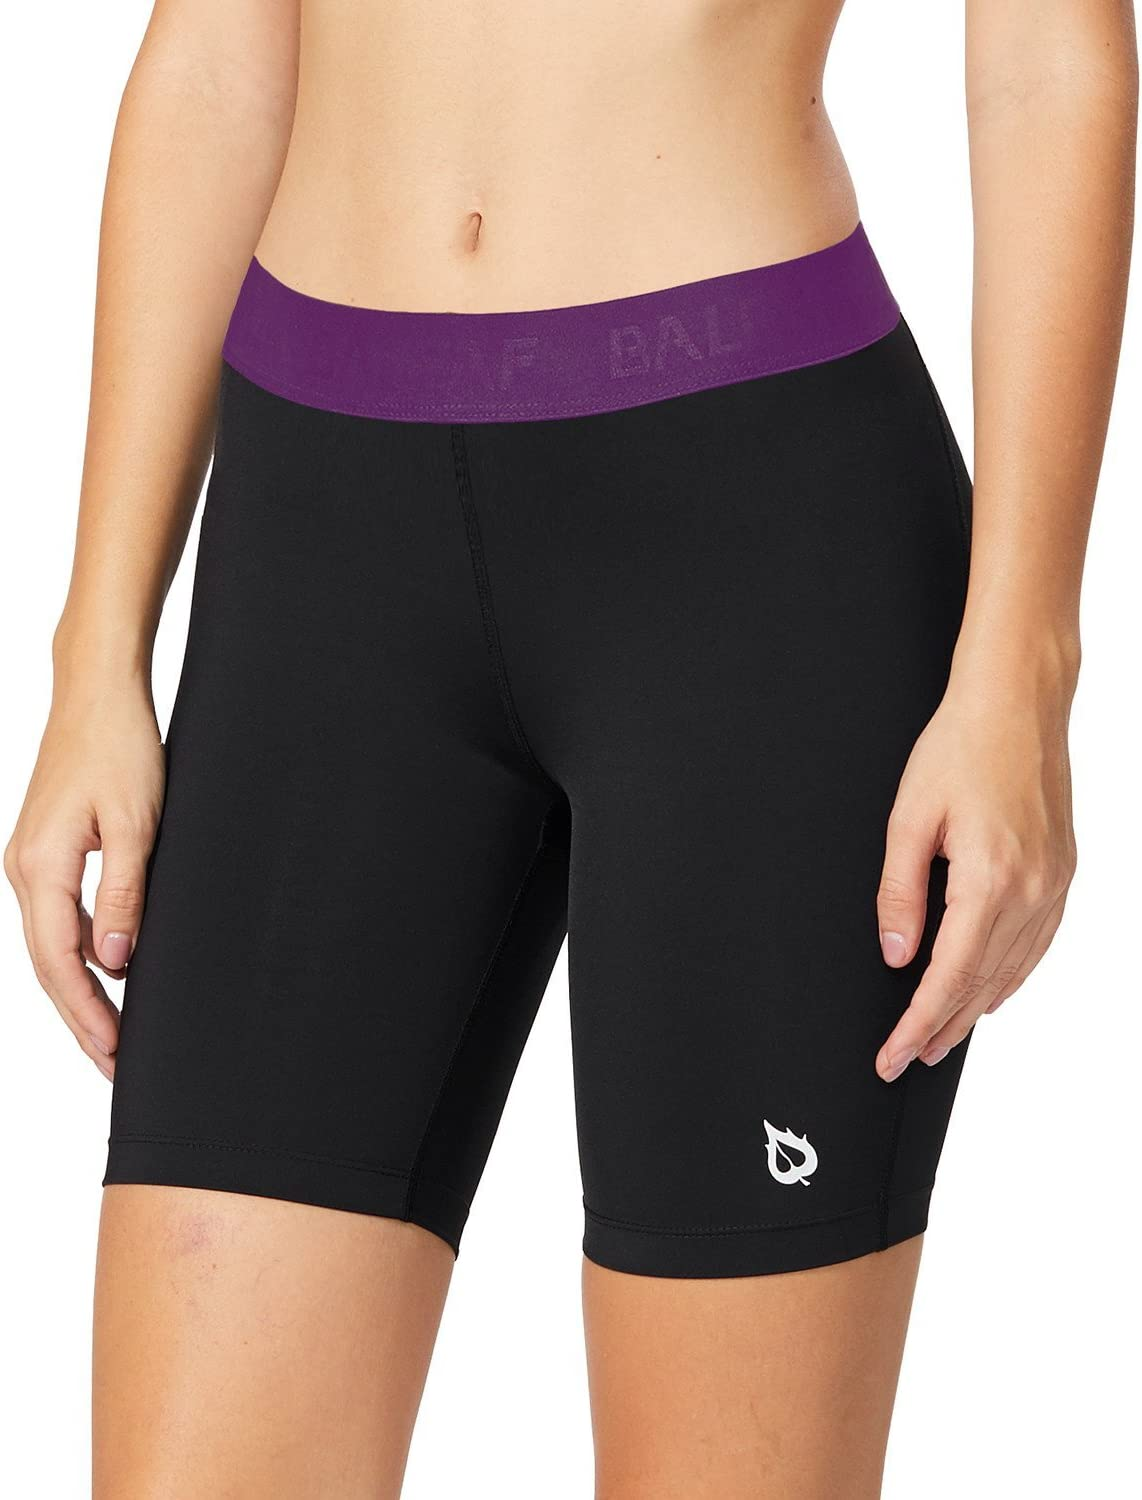 BALEAF Womens 7 Inches Long Compression Running Yoga Spandex Shorts Workout Back Pockets